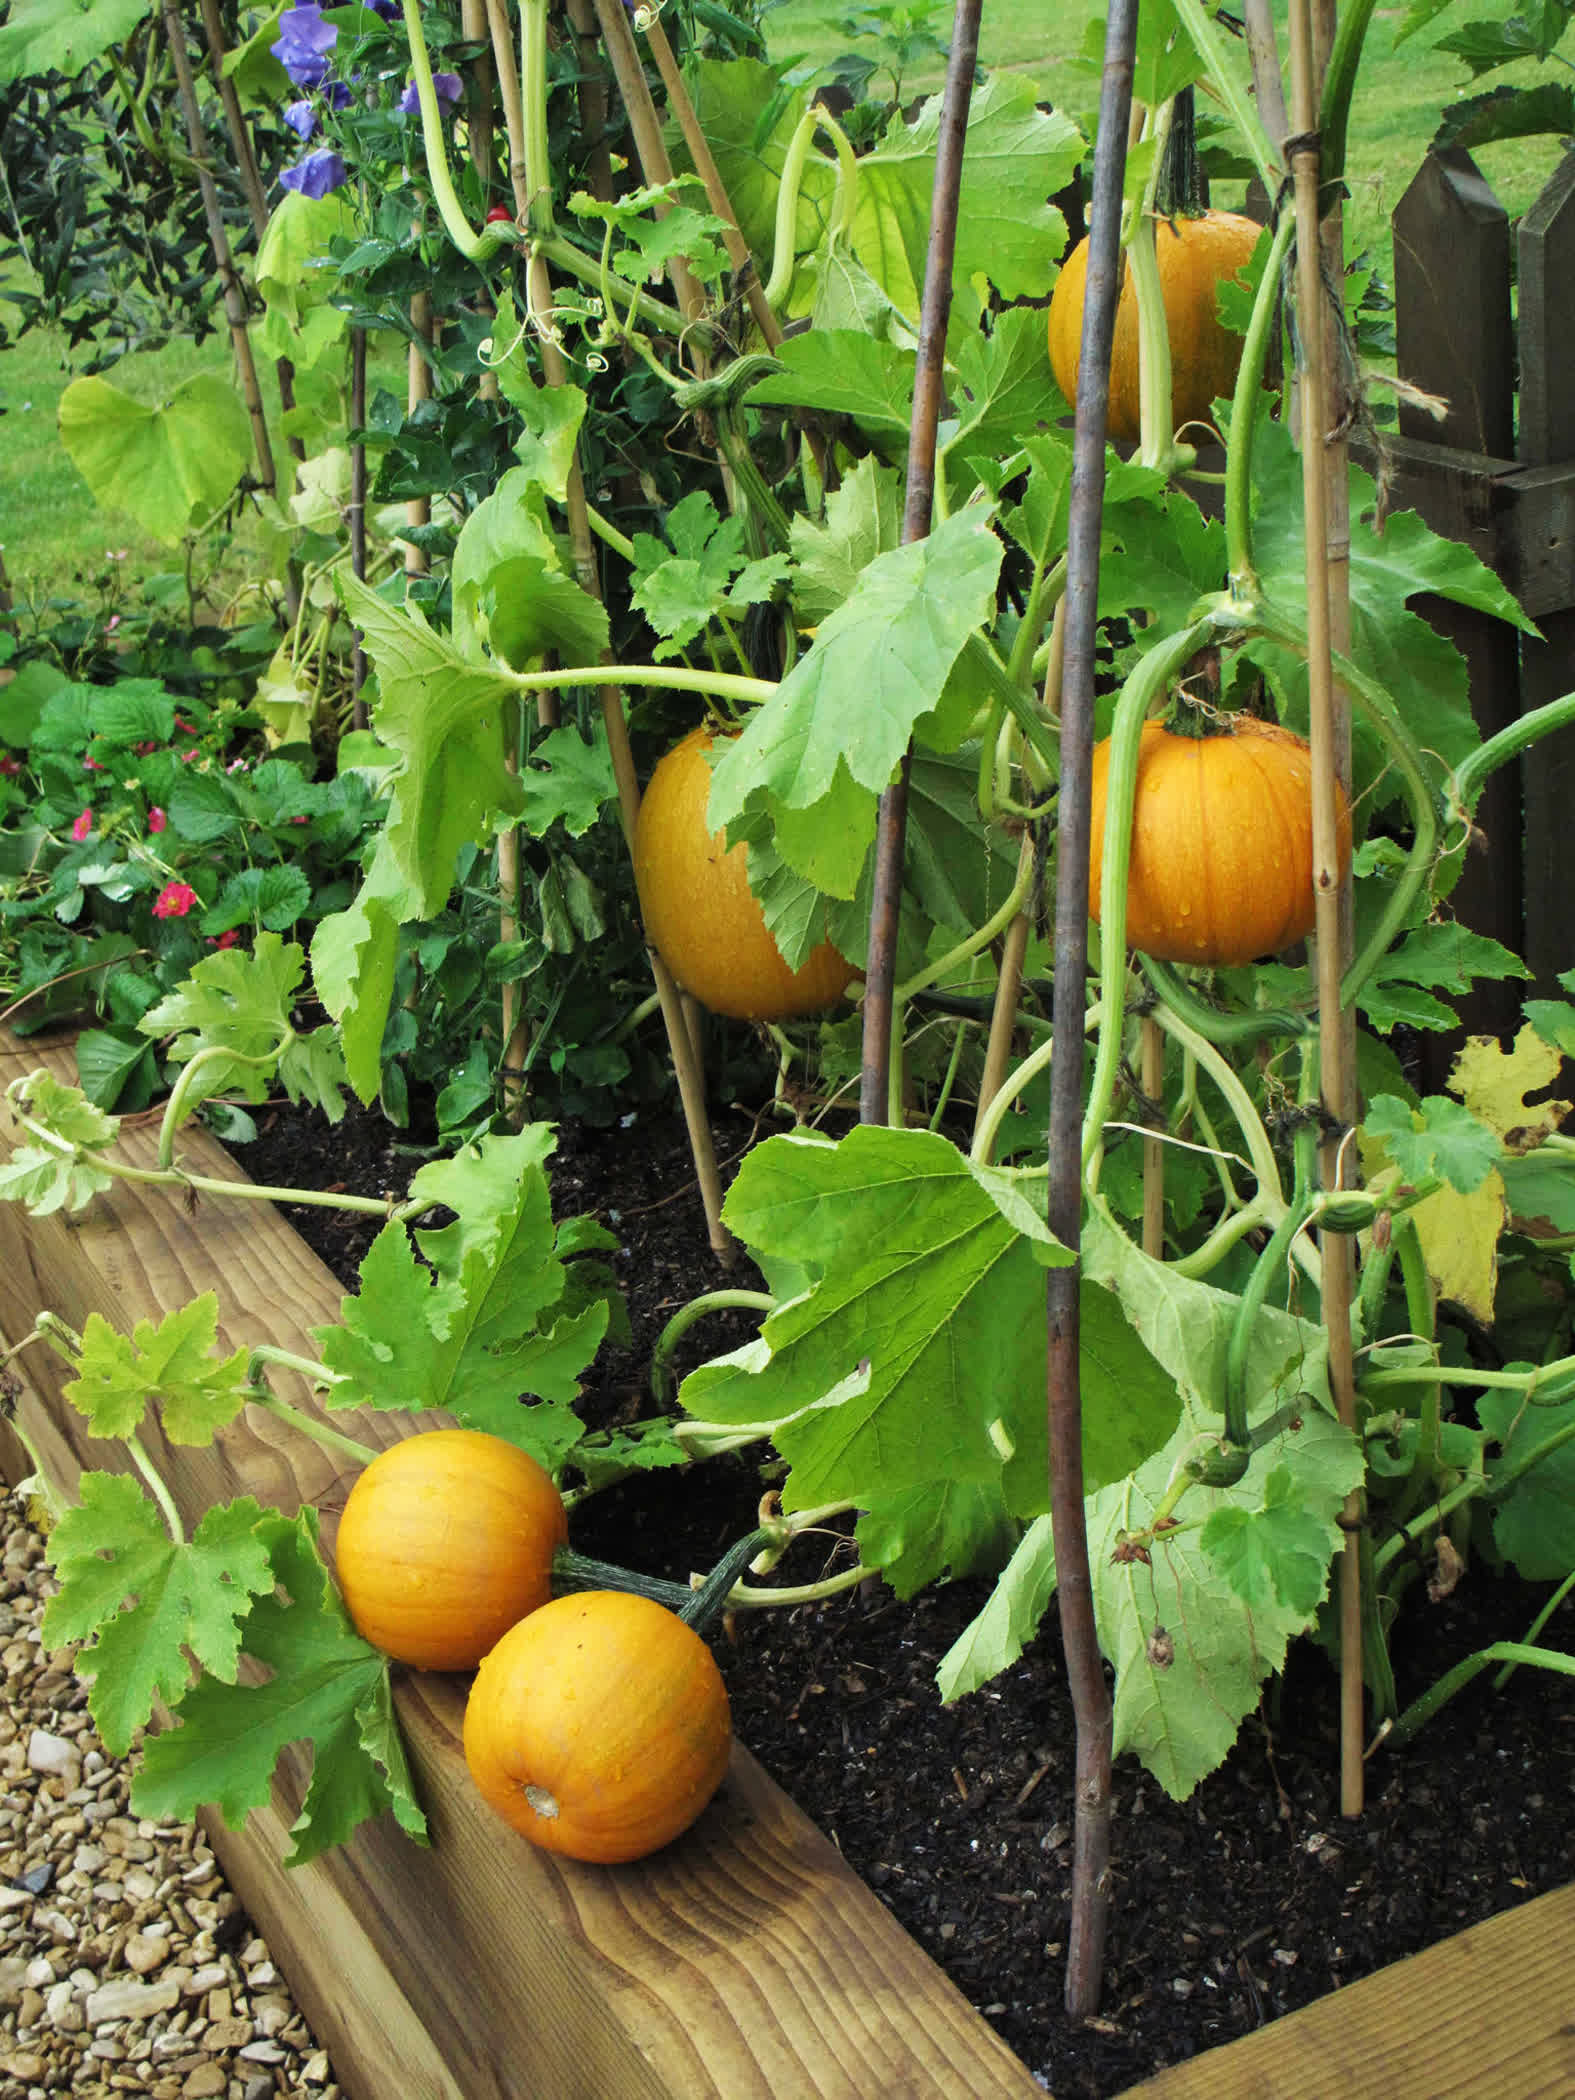 Growing miniature Jack B. Little and Baby Boo pumpkins takes up a whole lot less space. Many people grow them along fences, on trellises, or down from a balcony or deck.